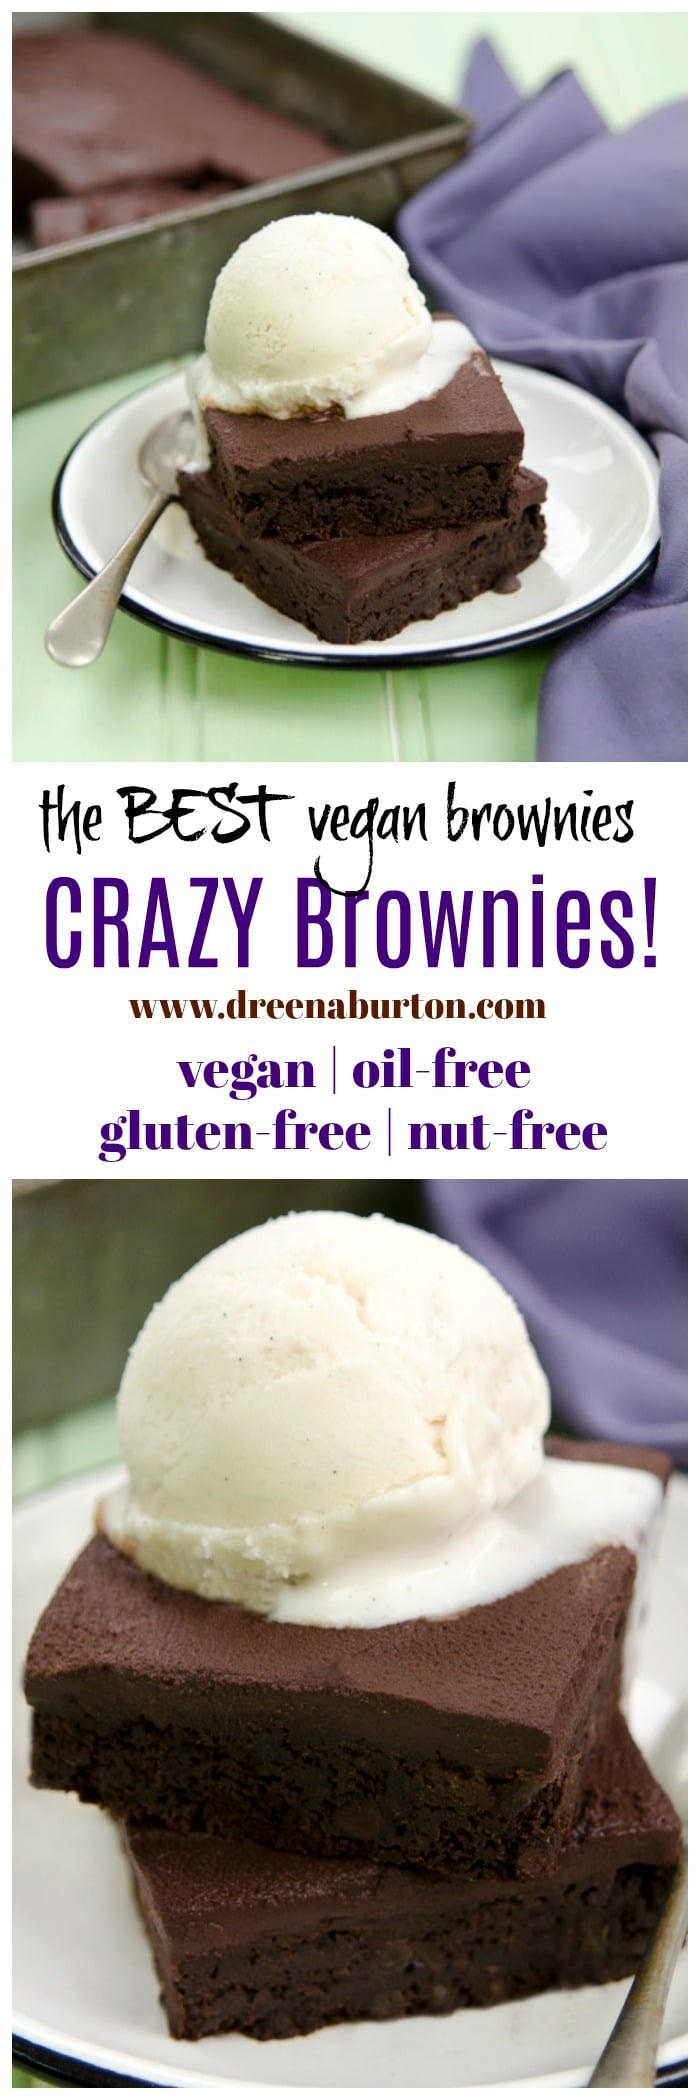 the BEST vegan brownie recipe: CRAZY BROWNIES! #vegan #brownies #oilfree #glutenfree #healthy #baking #nutfree #soyfree #plantbased #wfpb